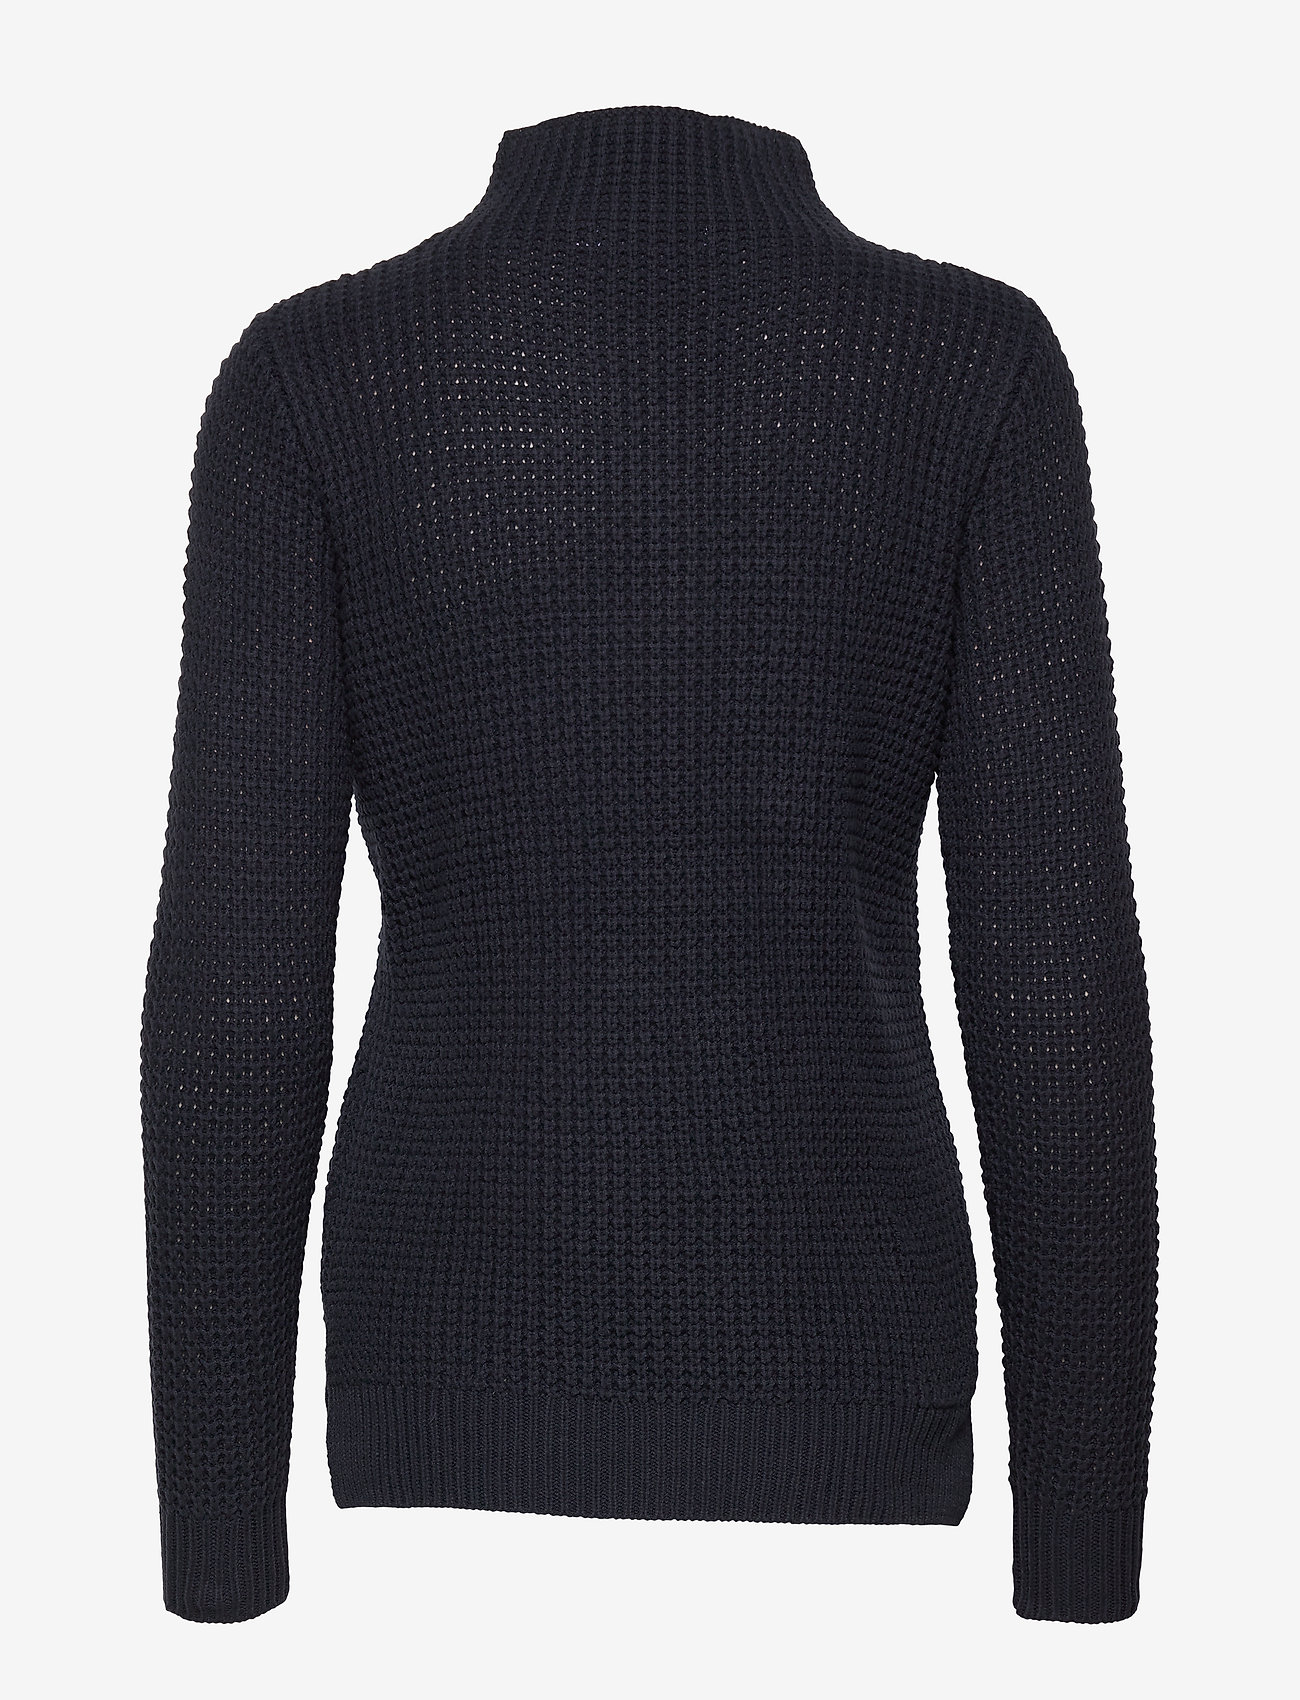 Sail Racing - W RACE WAFFLE KNIT POLO - jumpers - navy - 1